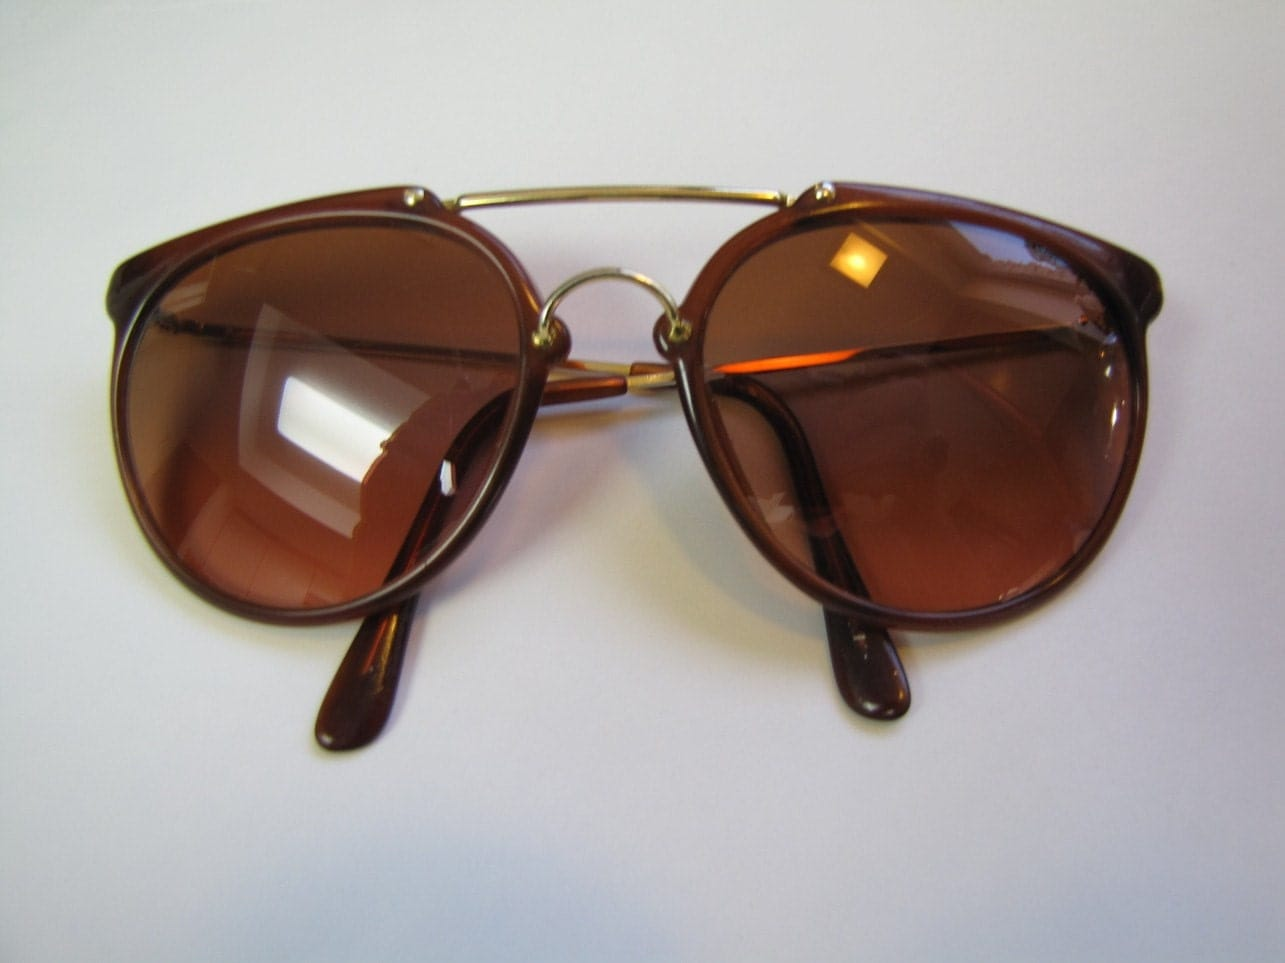 Vintage Serengeti Drivers Sunglasses model by